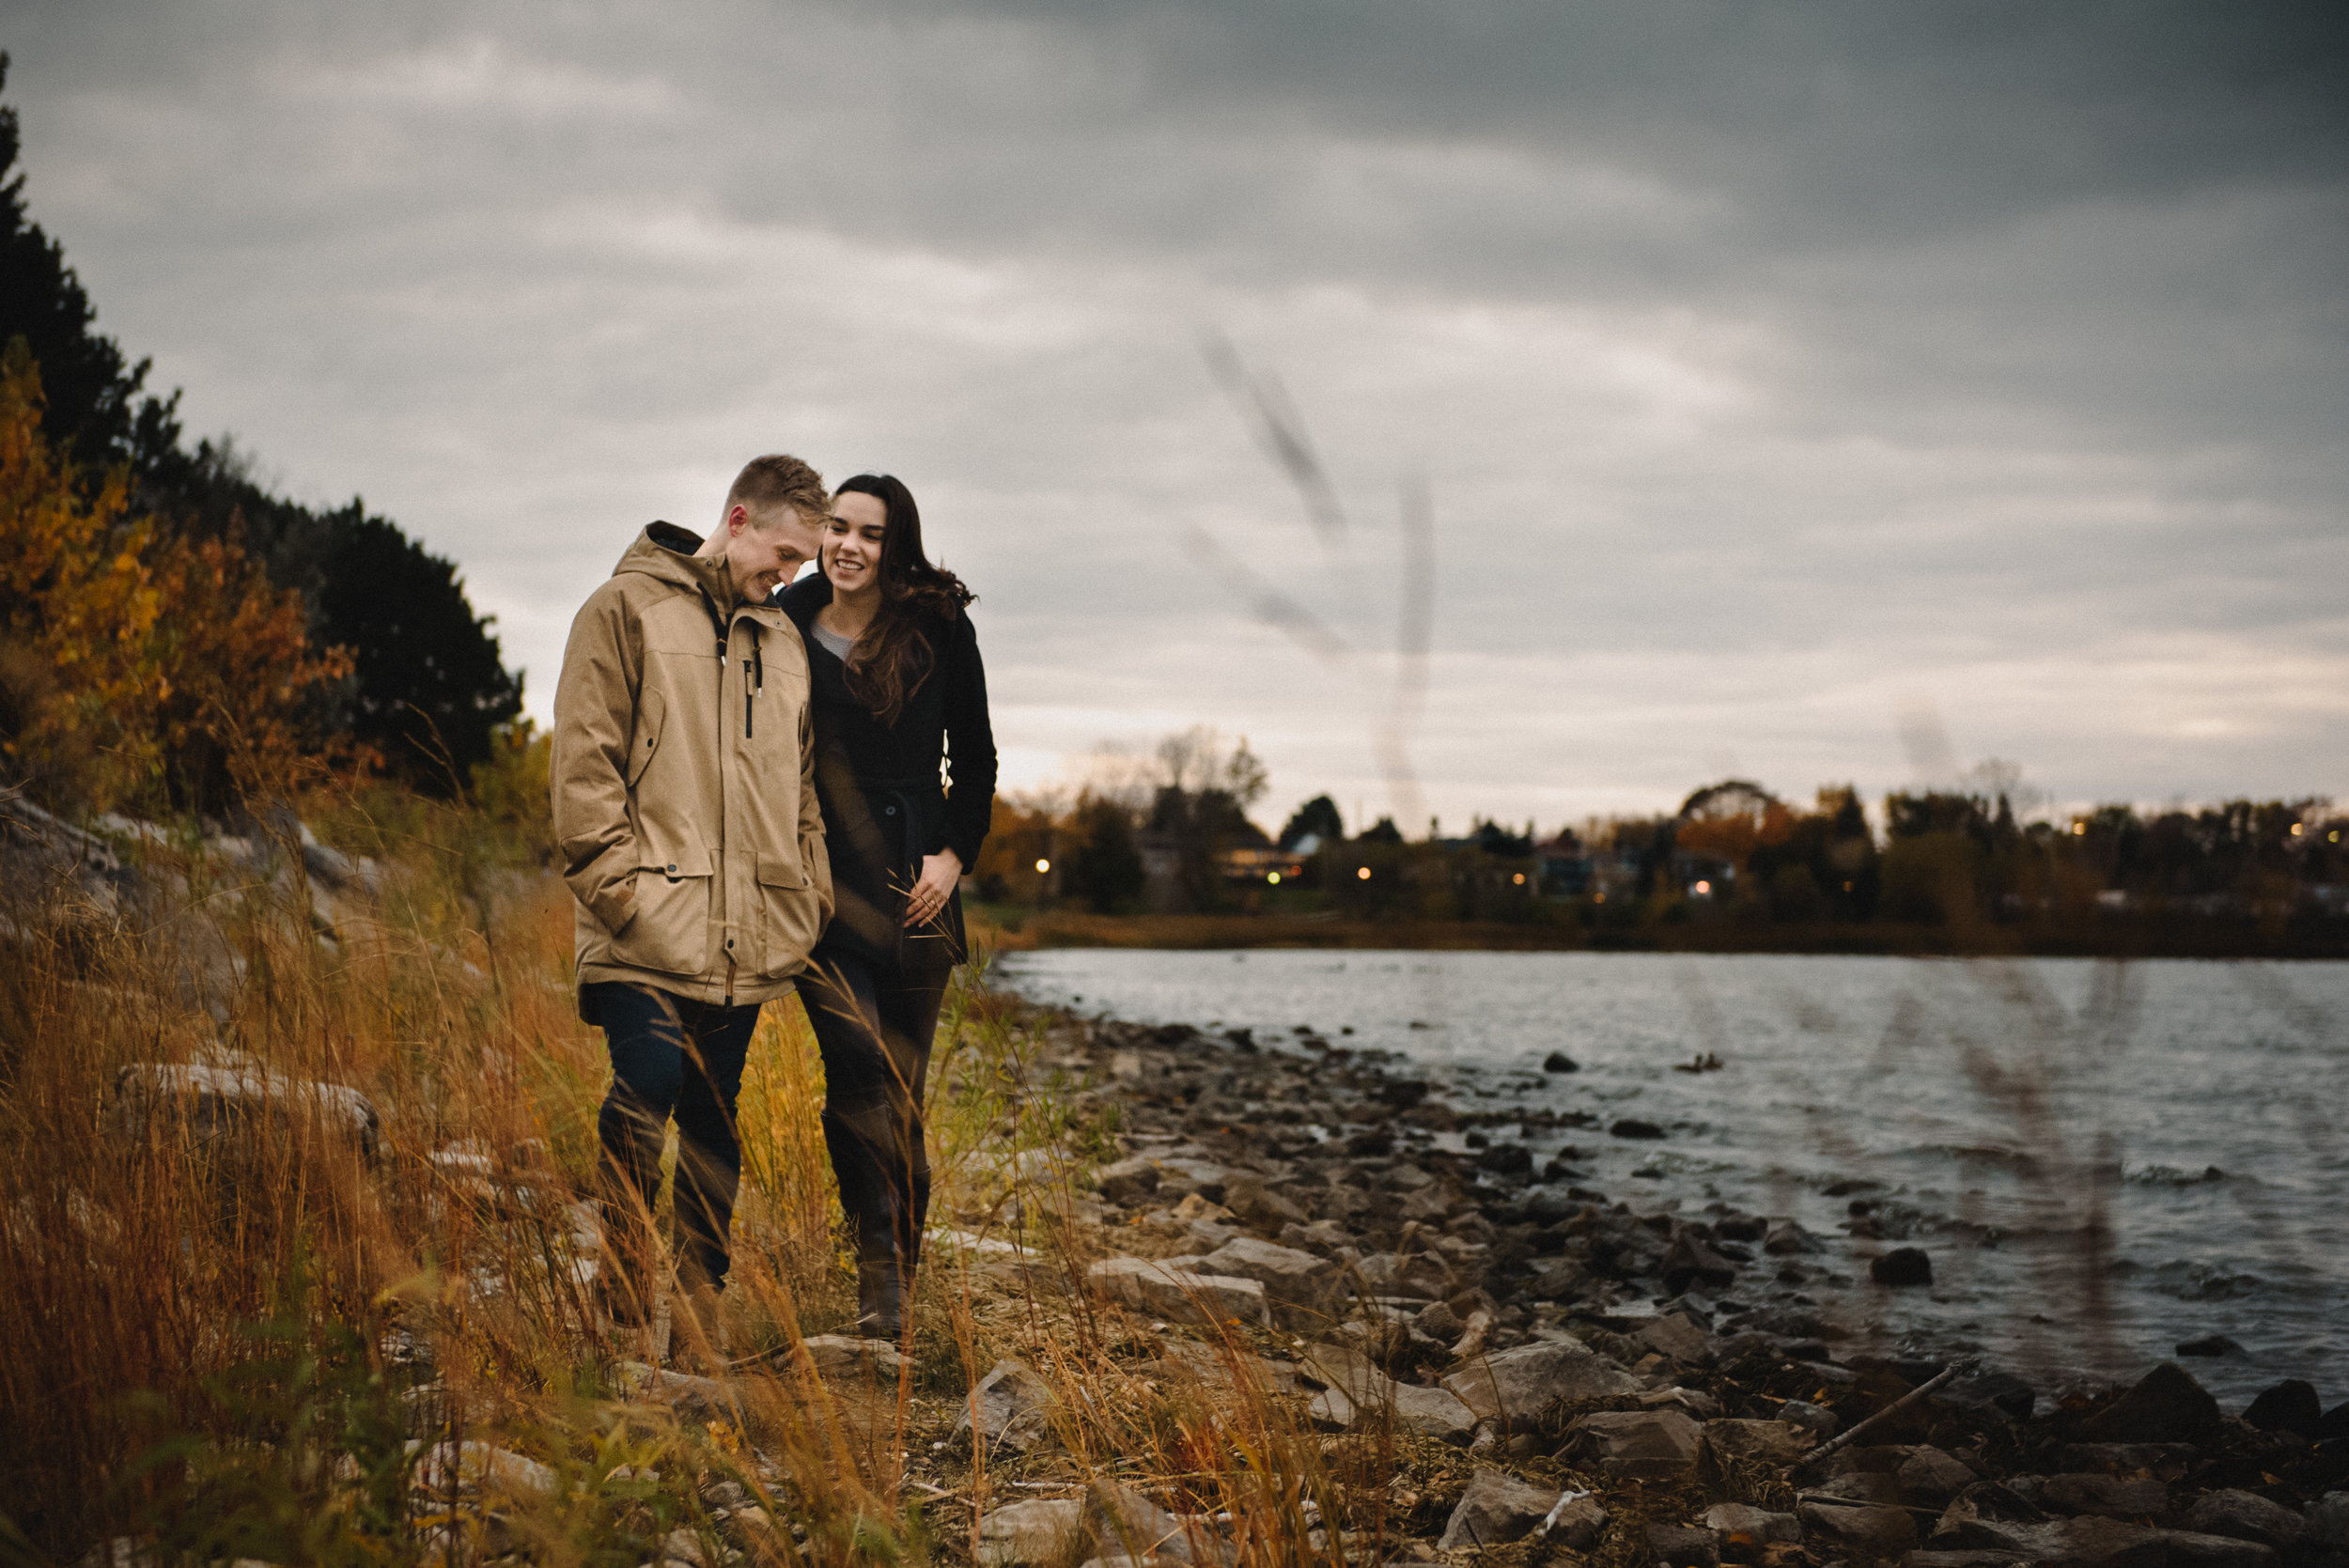 Mocha Tree Studios Ottawa Wedding and Engagement Photographer and Videographer Dark Moody Intimate Authentic Modern Romantic Cinematic Best Candid Where in Ottawa 4